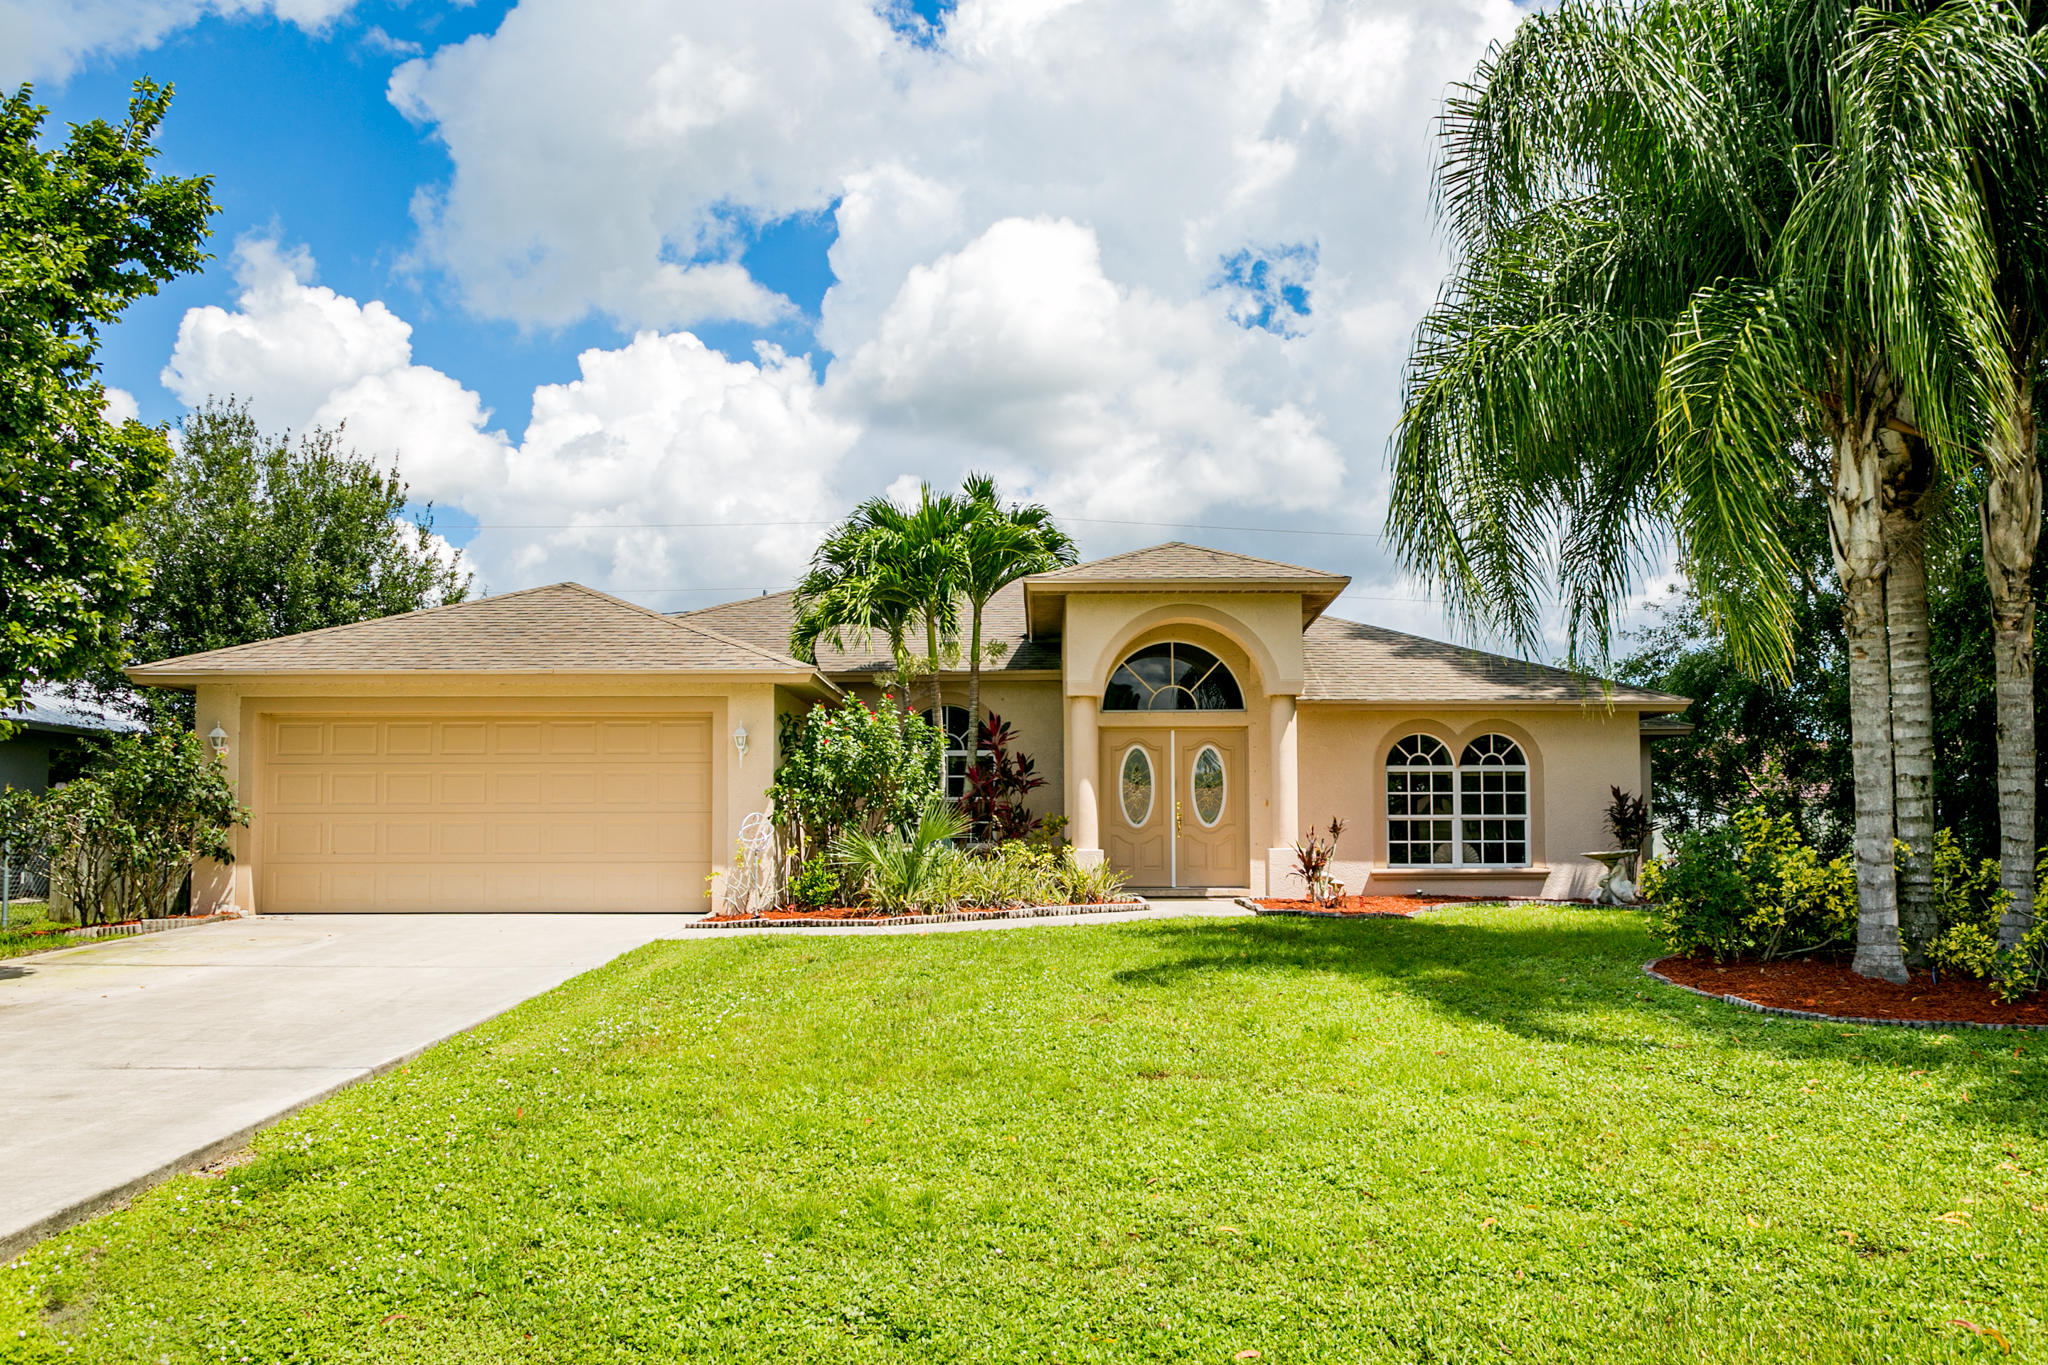 5202 Nw Edgarton Terrace, Port Saint Lucie, FL 34953